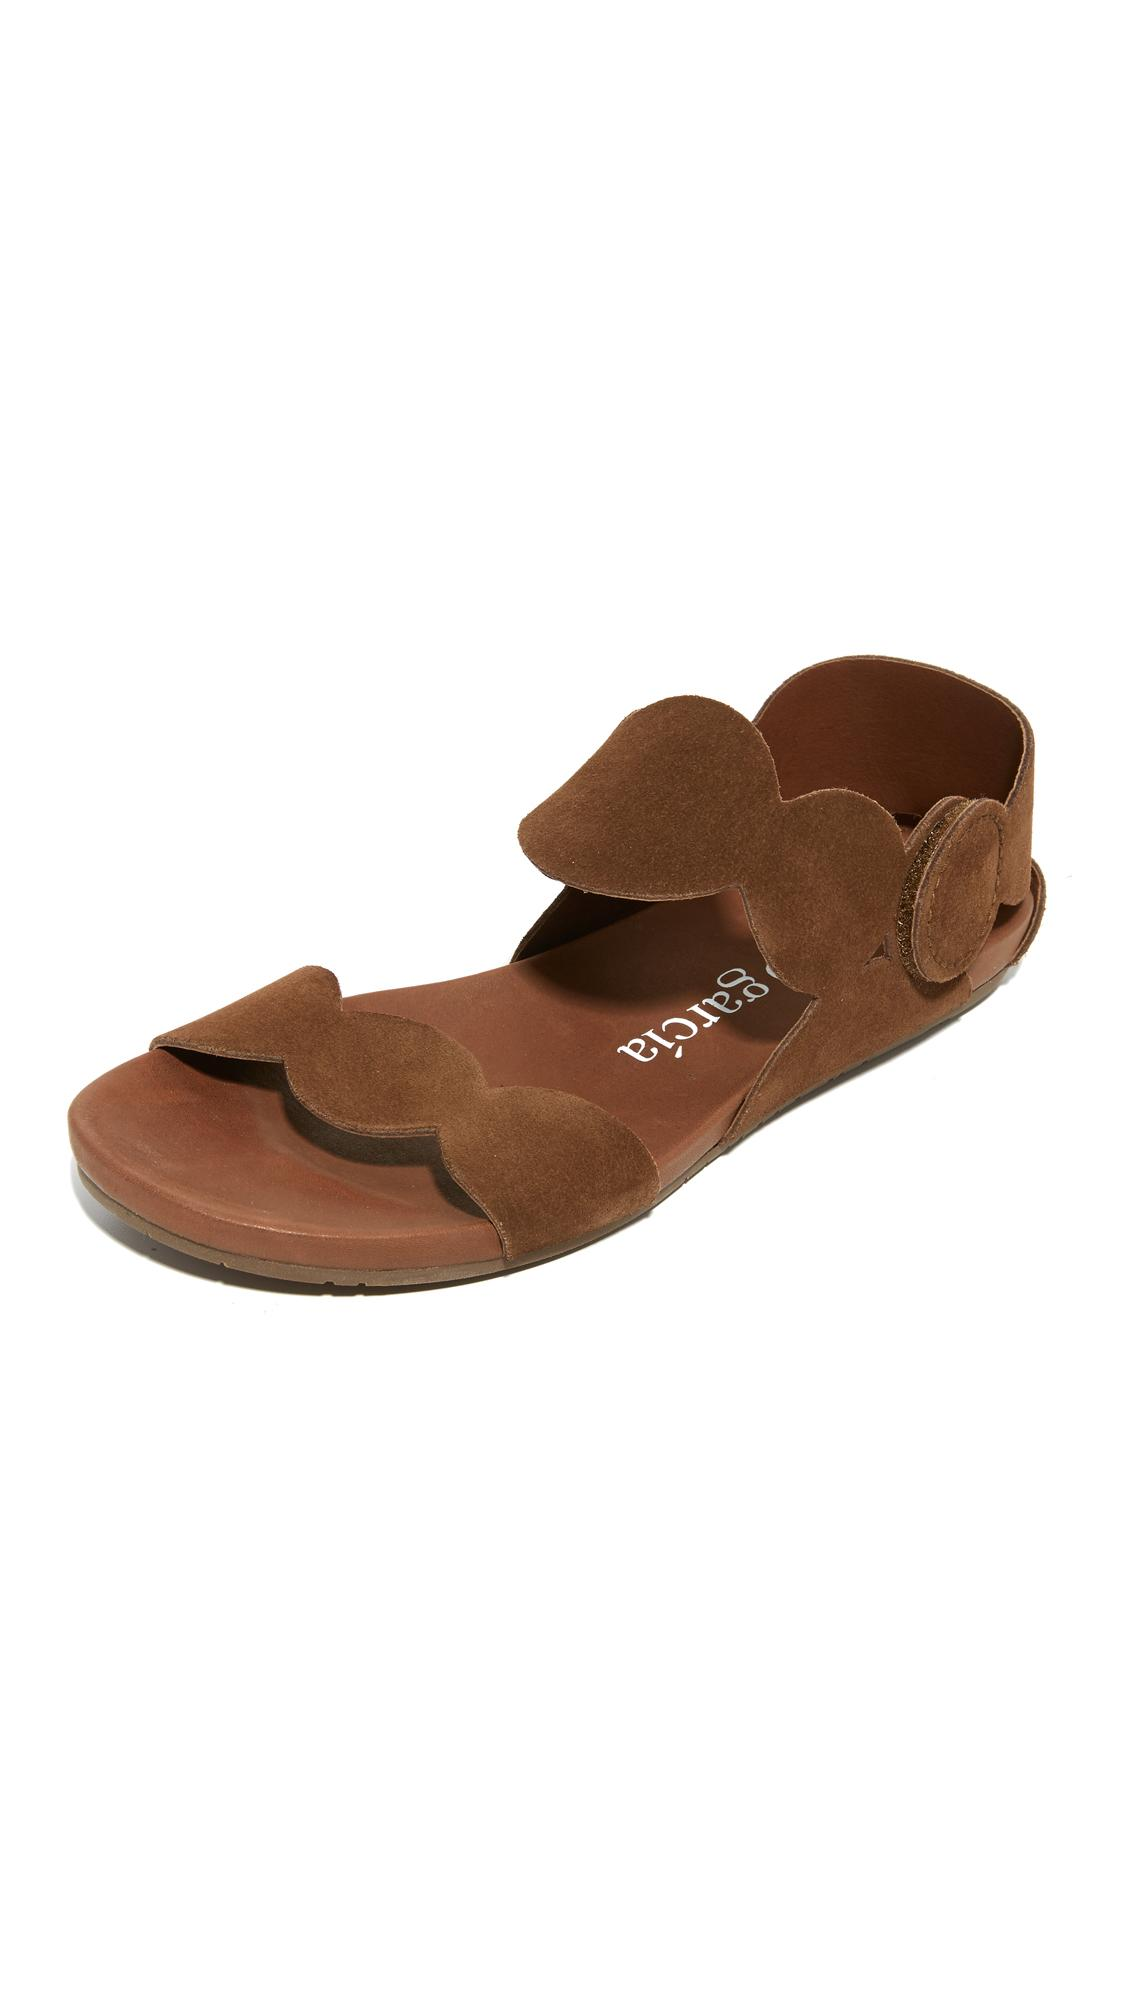 Pedro Garcia Jeanne Flat Sandals In Brown Lyst